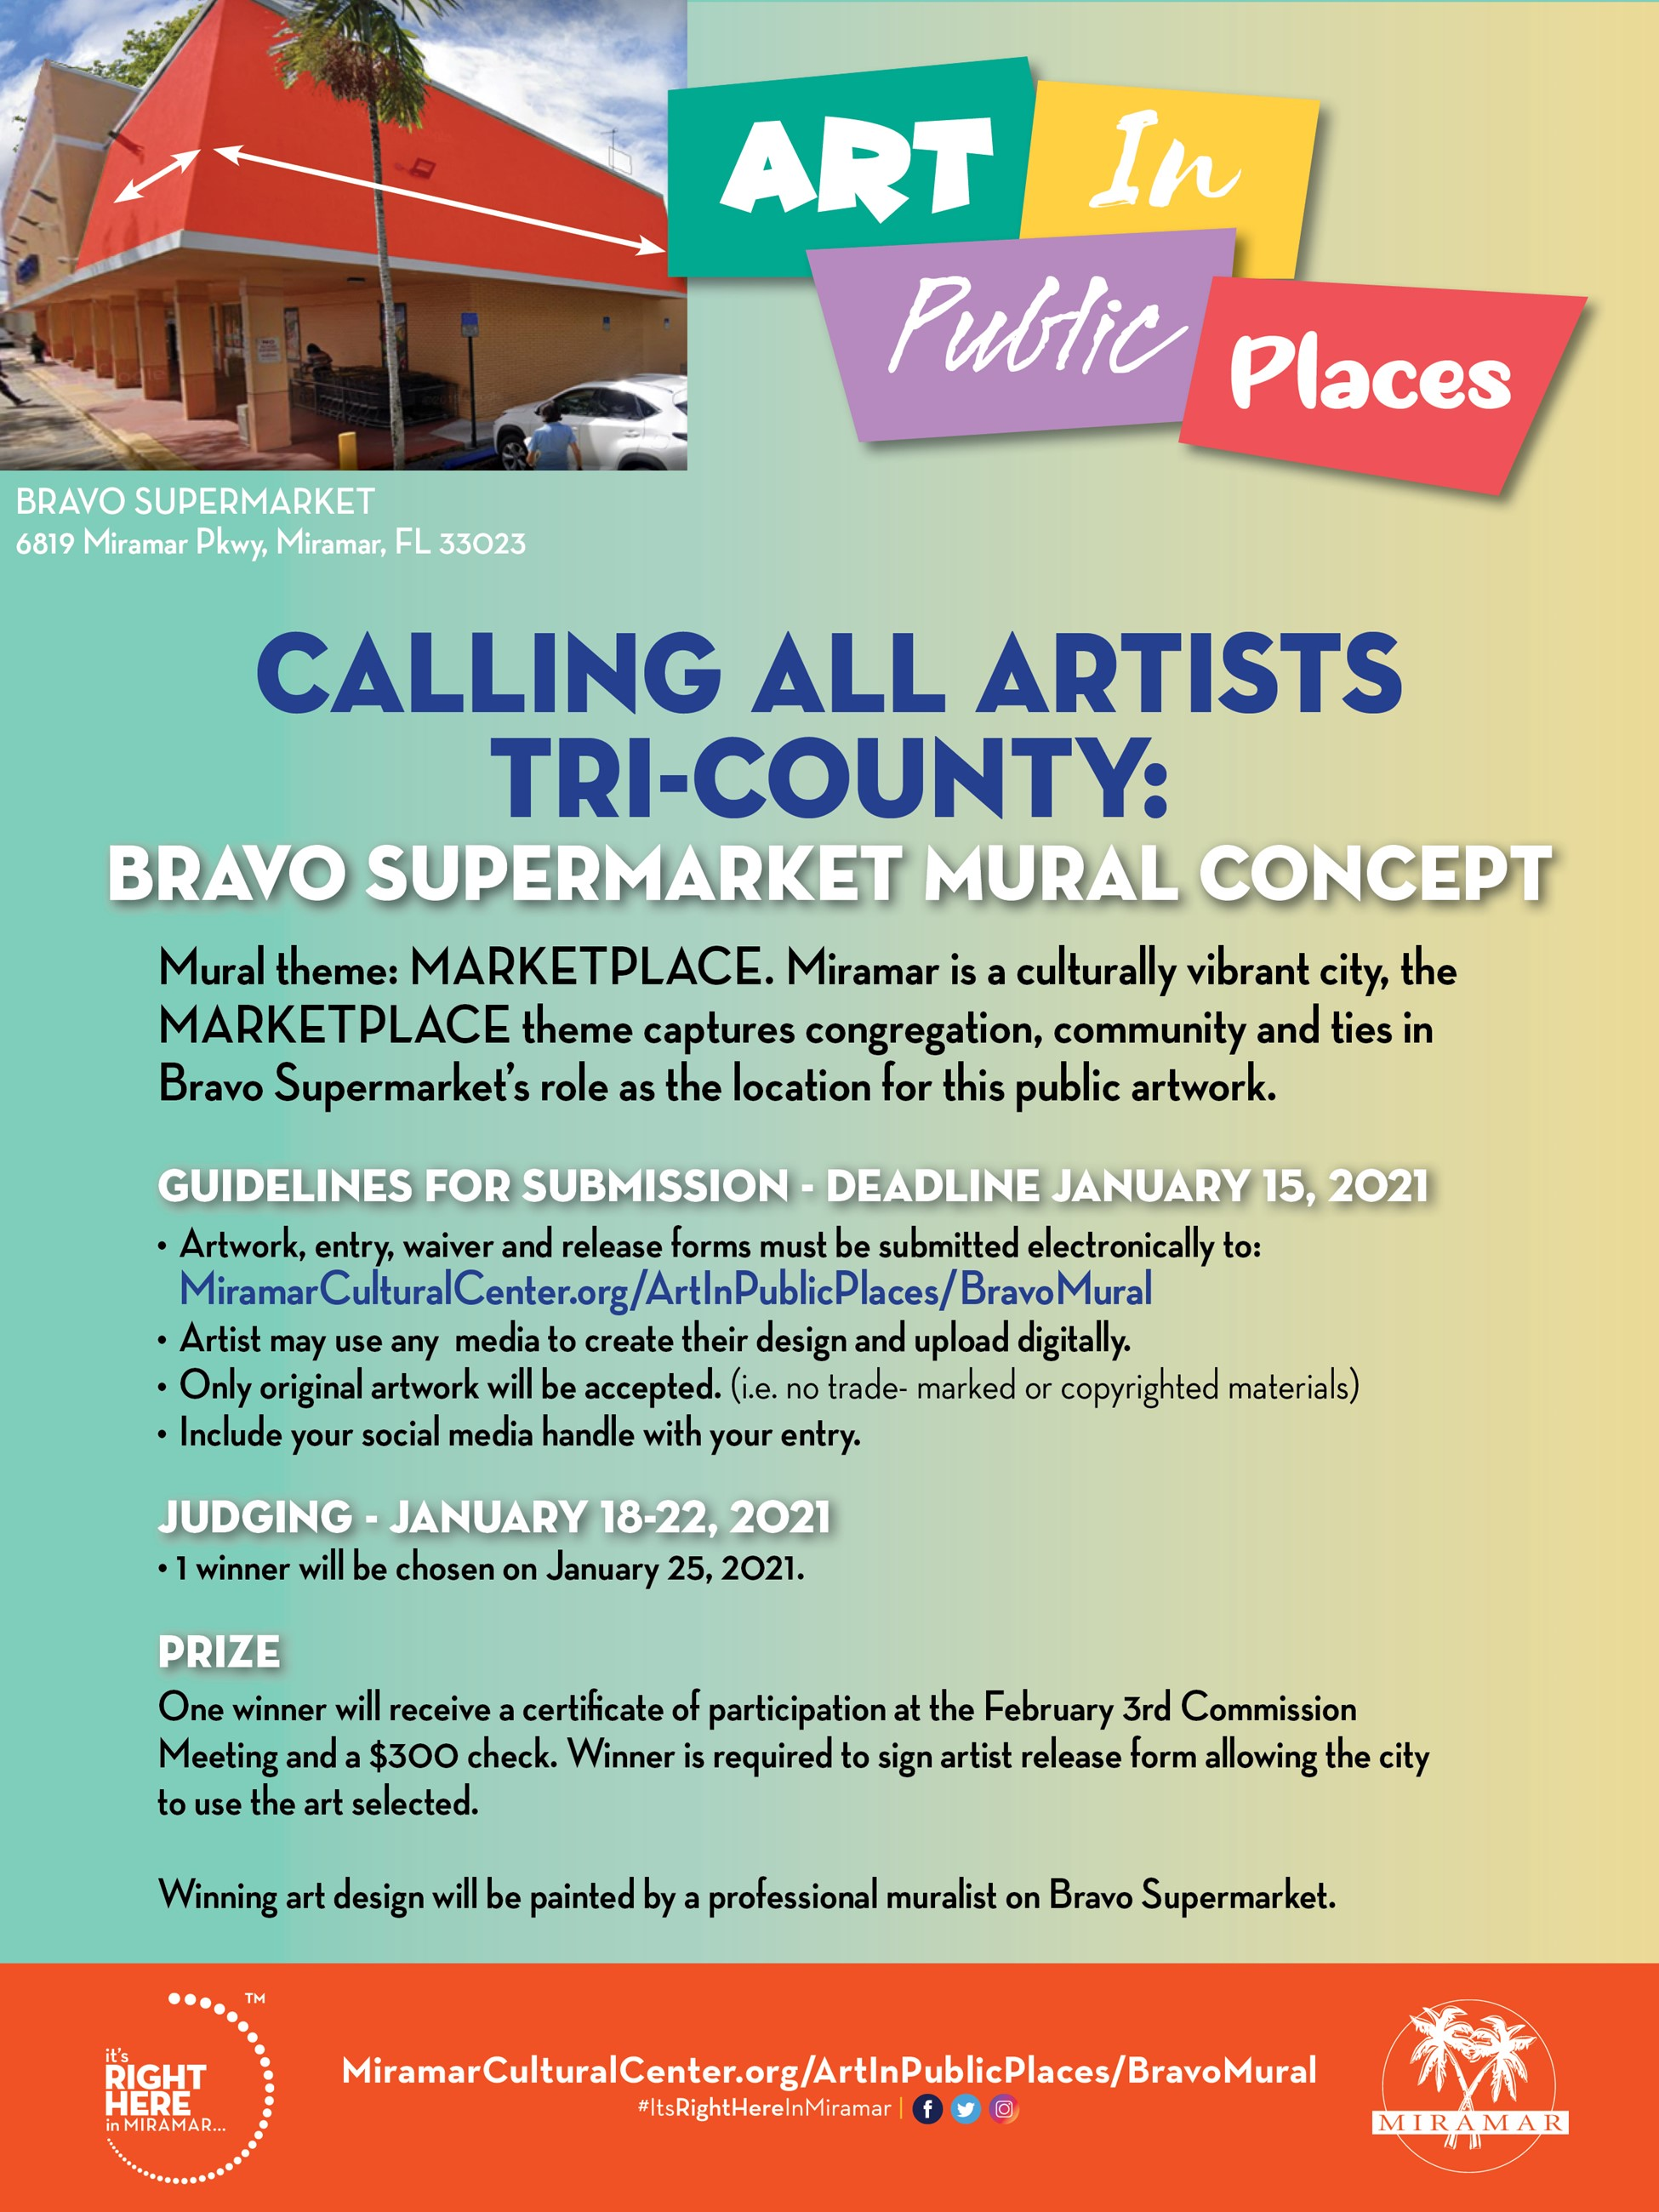 Art in Public Places Calling All Artists - Flyer